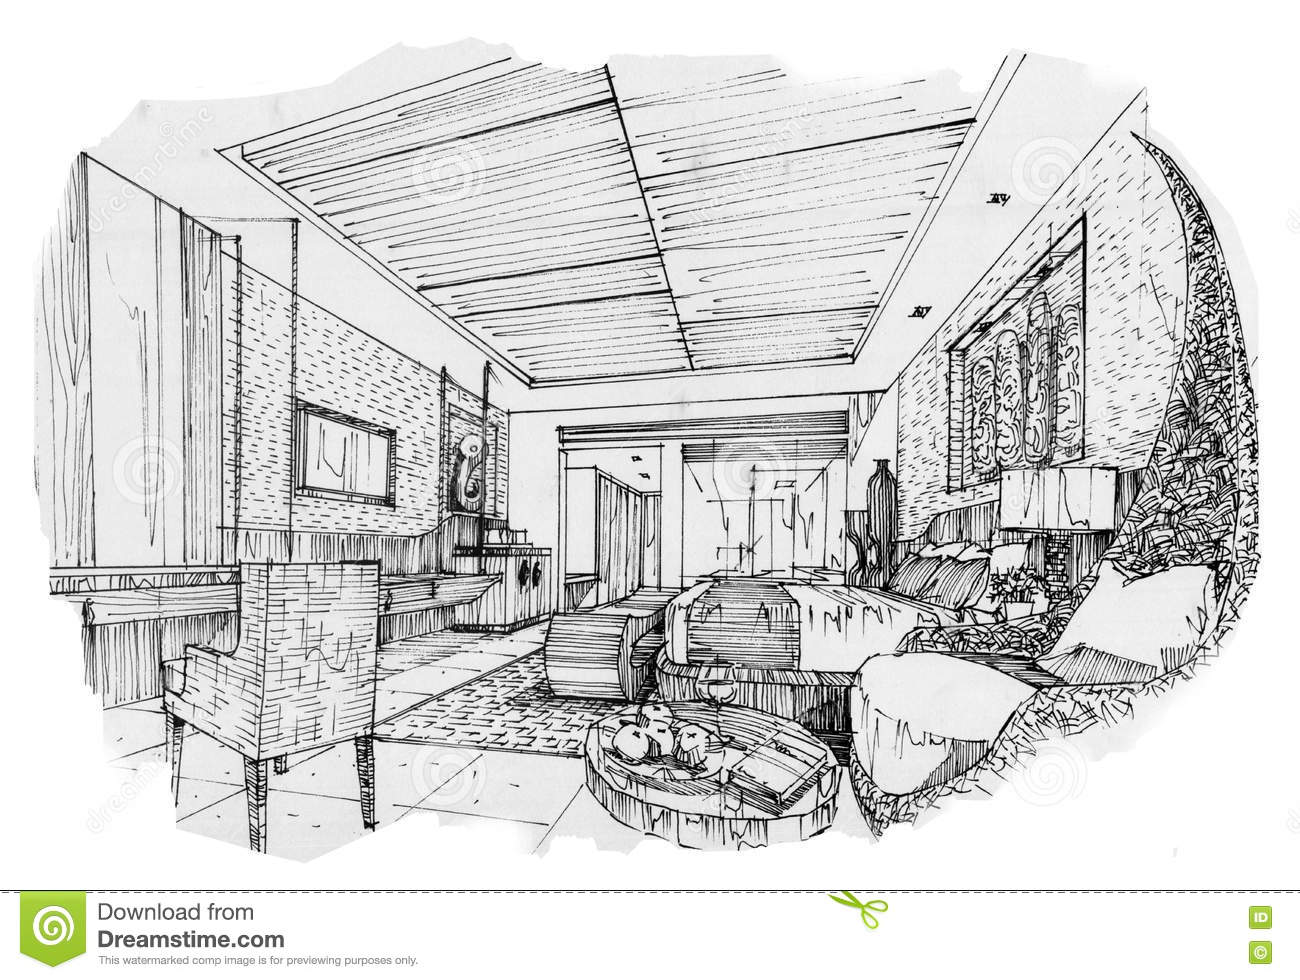 Swimming Pool Sketch : Sketch interior perspective swimming pools black and